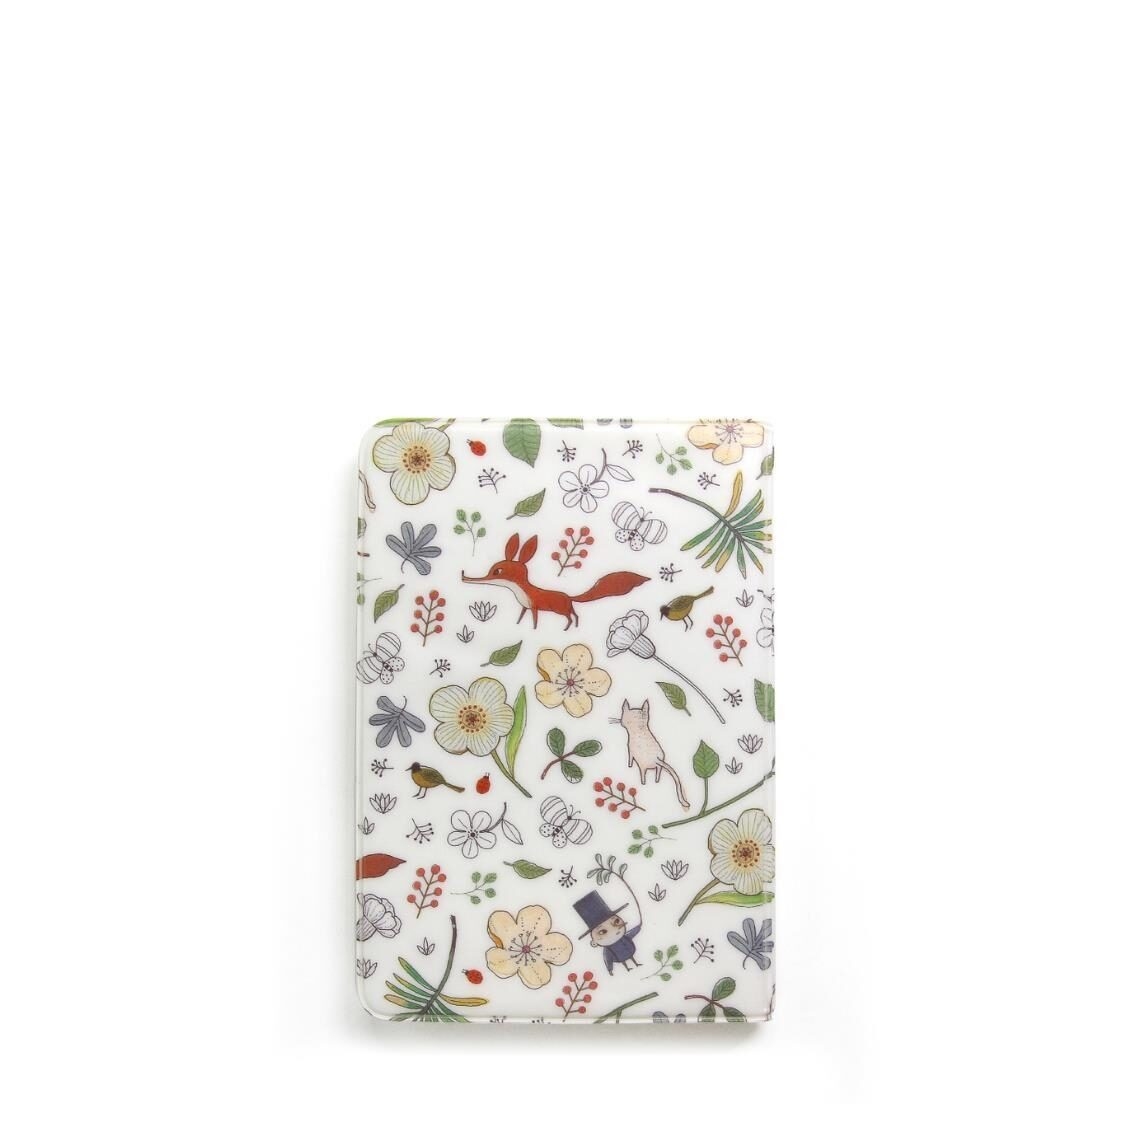 Willow Soft Passport Cover White